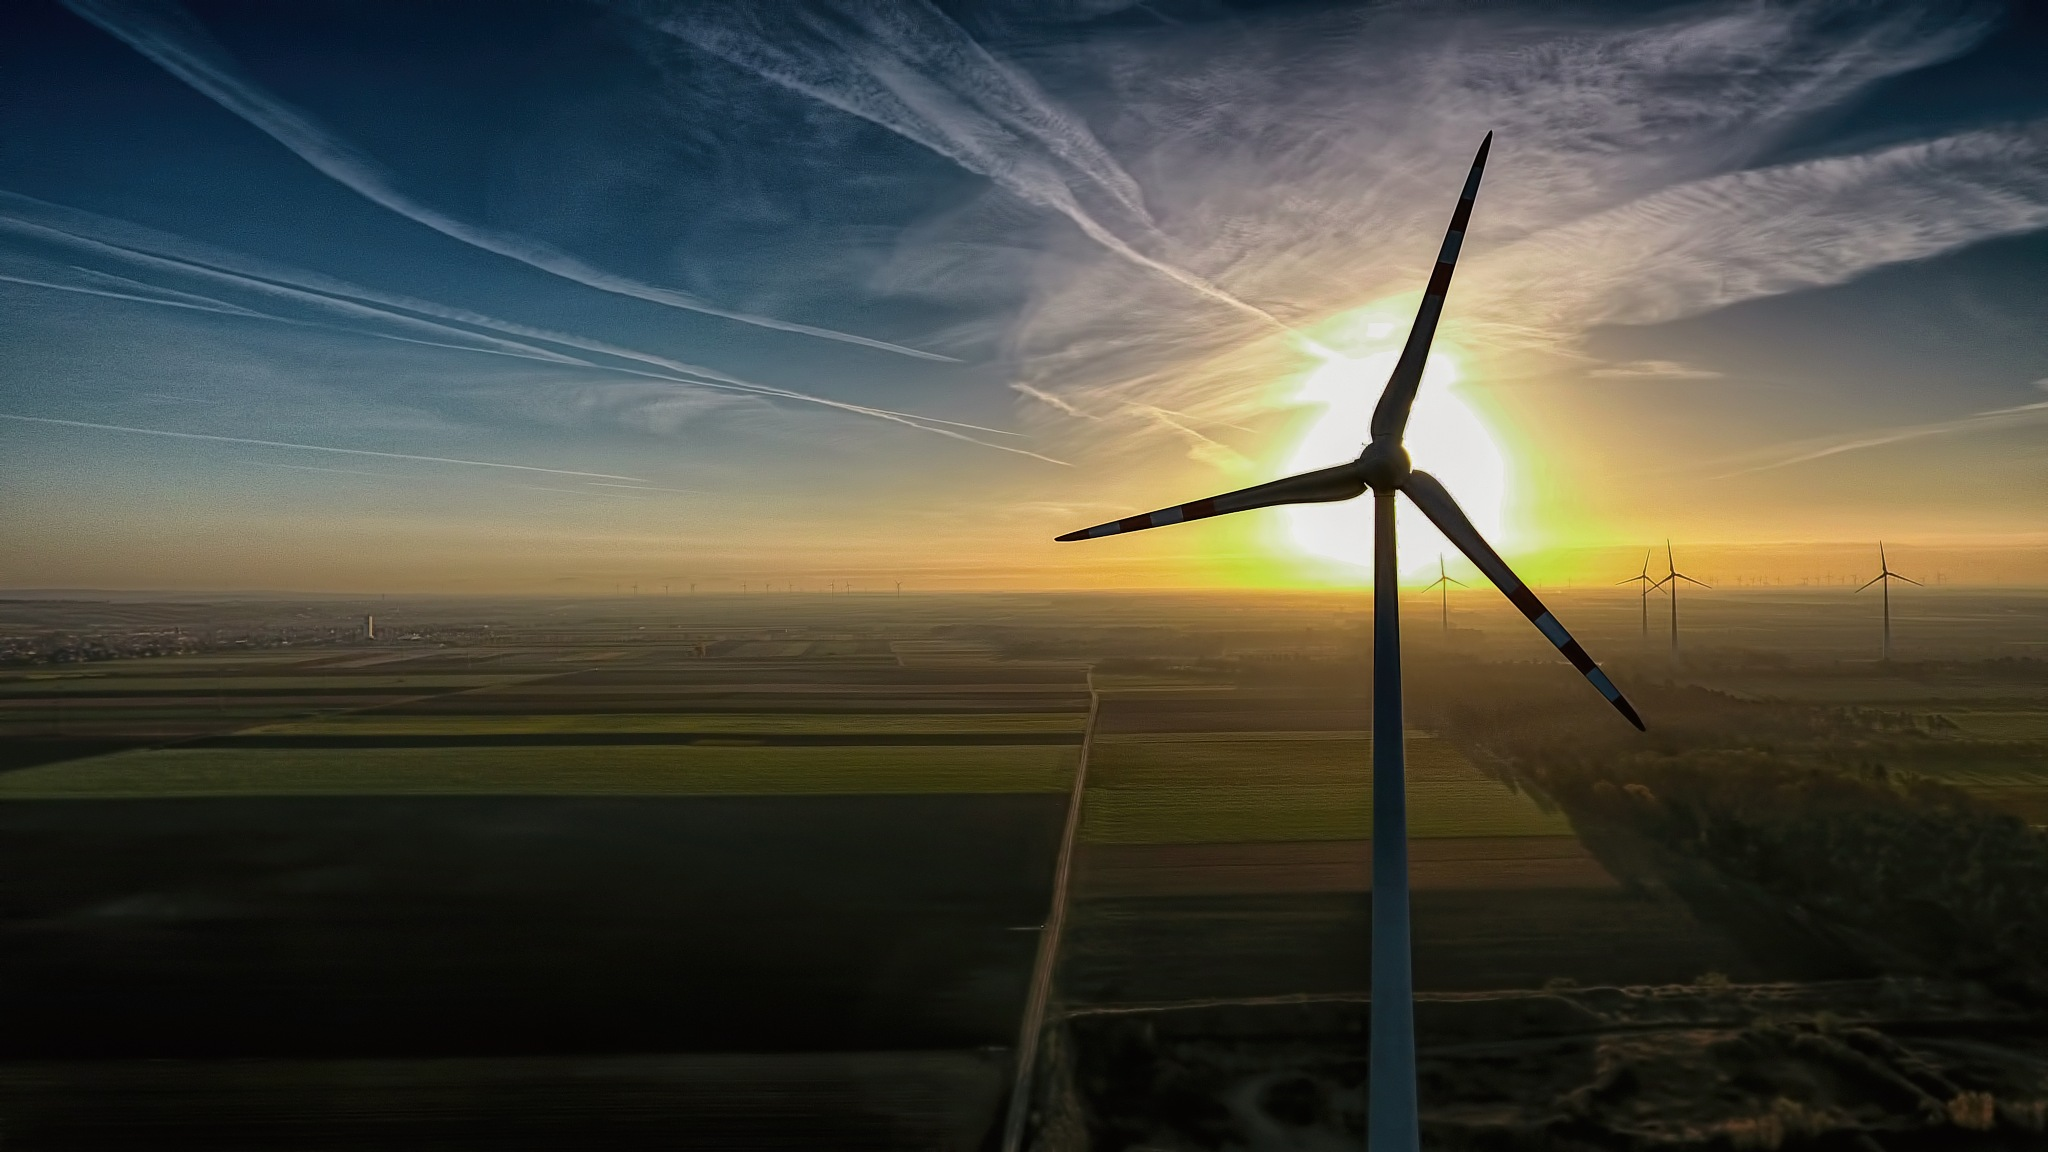 Wind Power by Gerald Berger